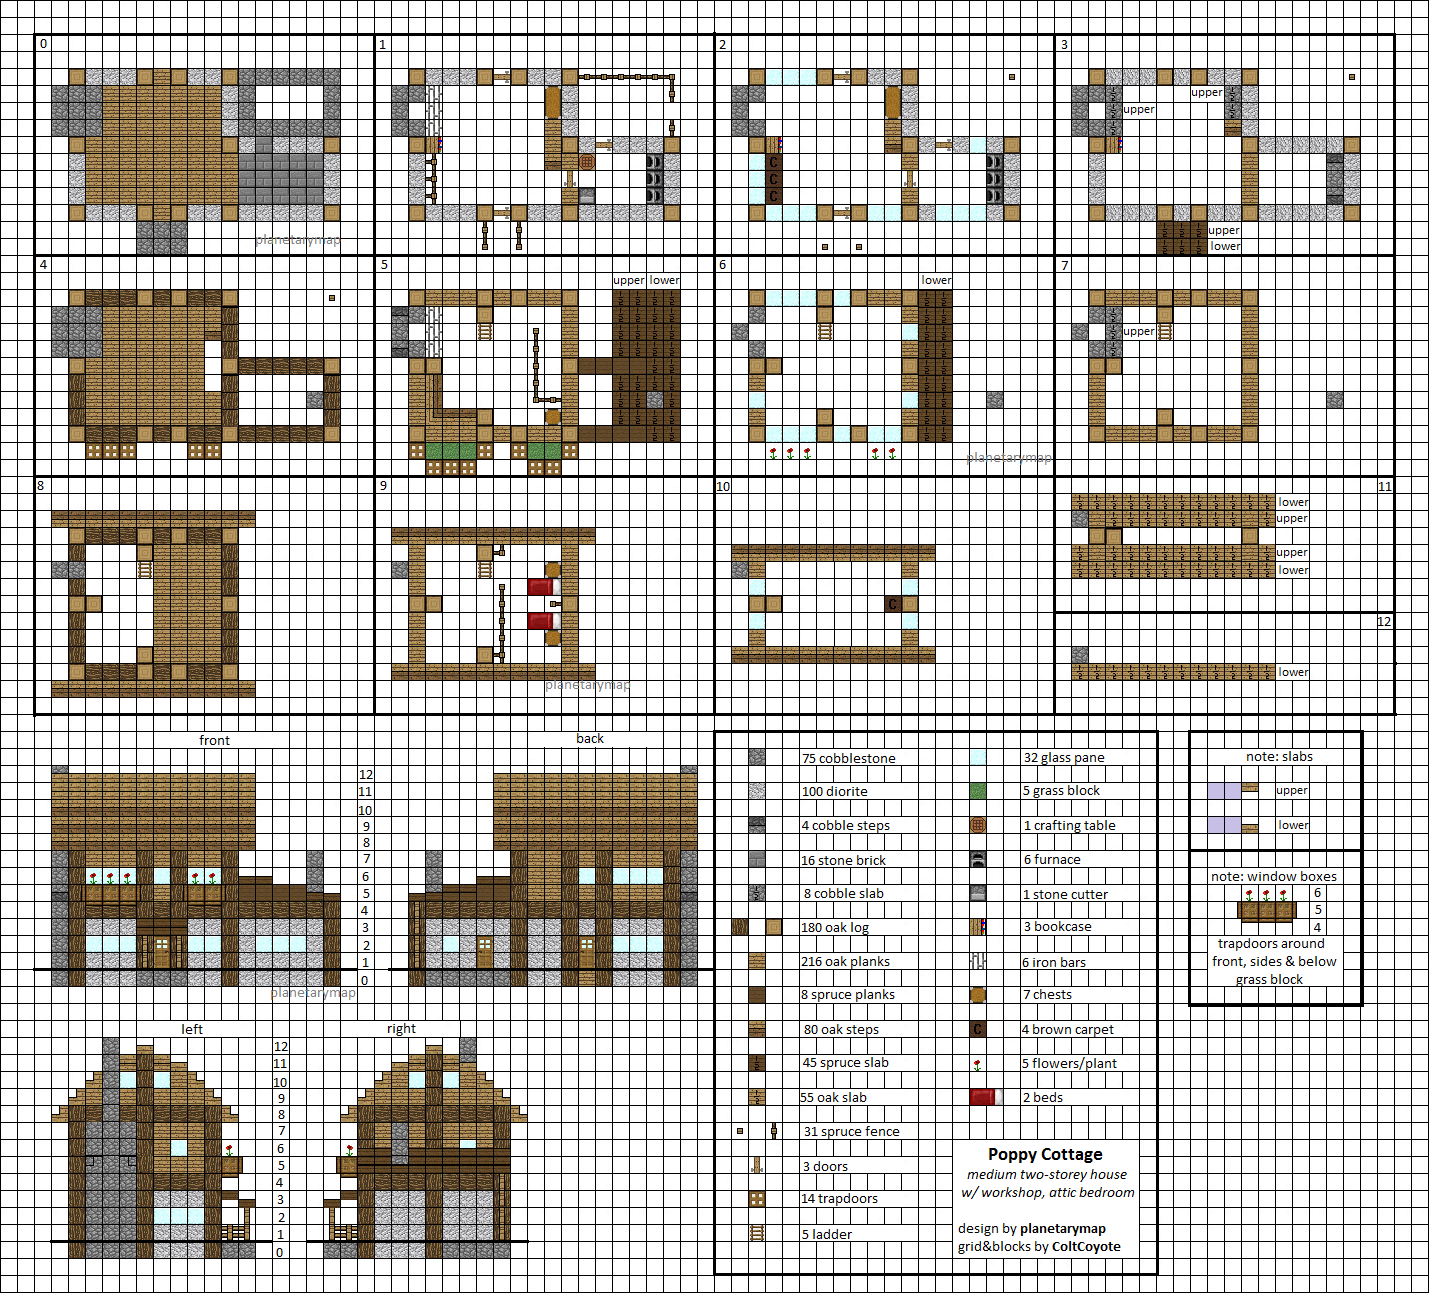 Poppy Cottage   Medium Minecraft House Blueprints By  Planetarymap.deviantart.com On @DeviantArt